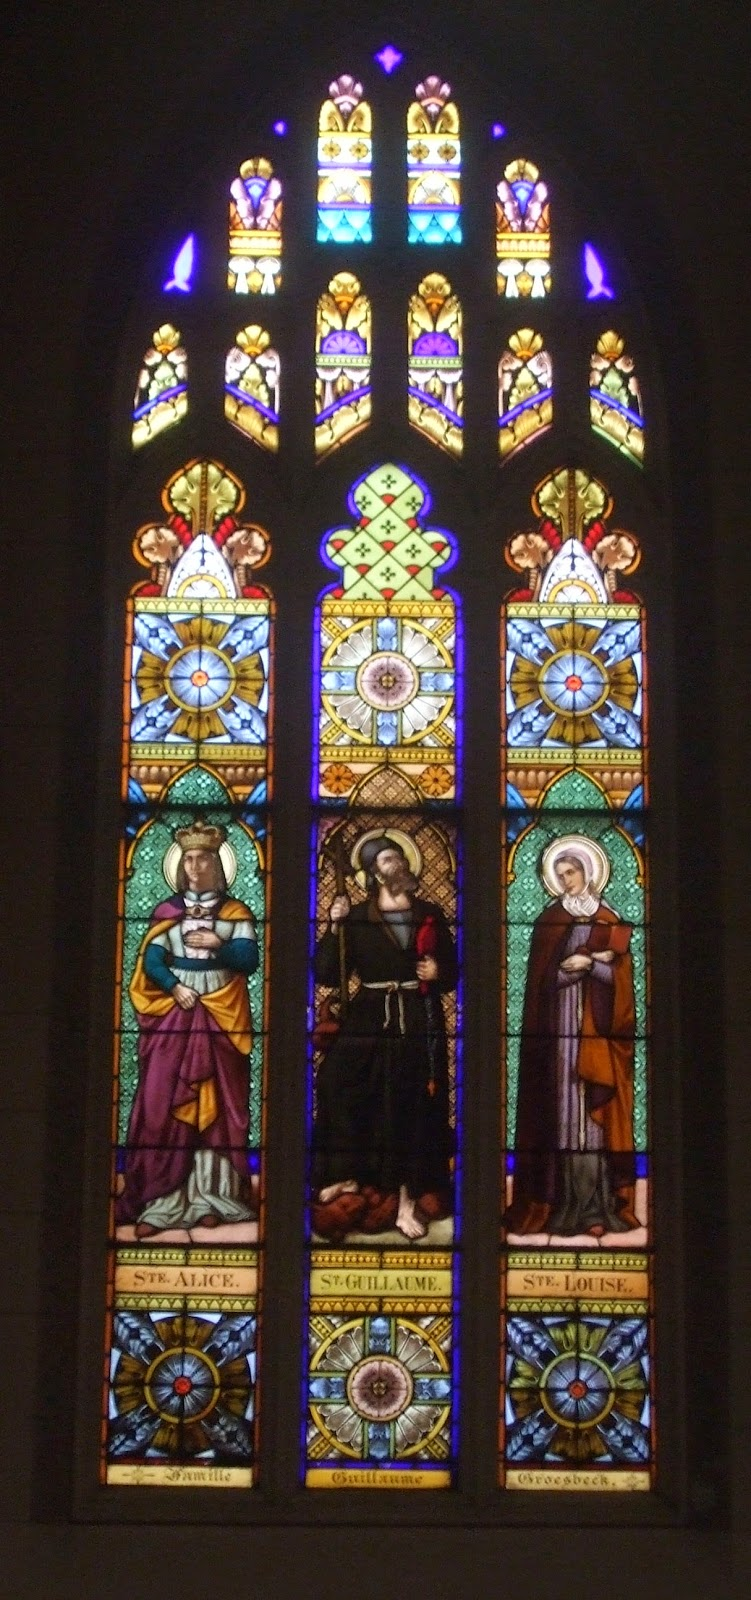 The church's stained glass windows are the oldest in the city